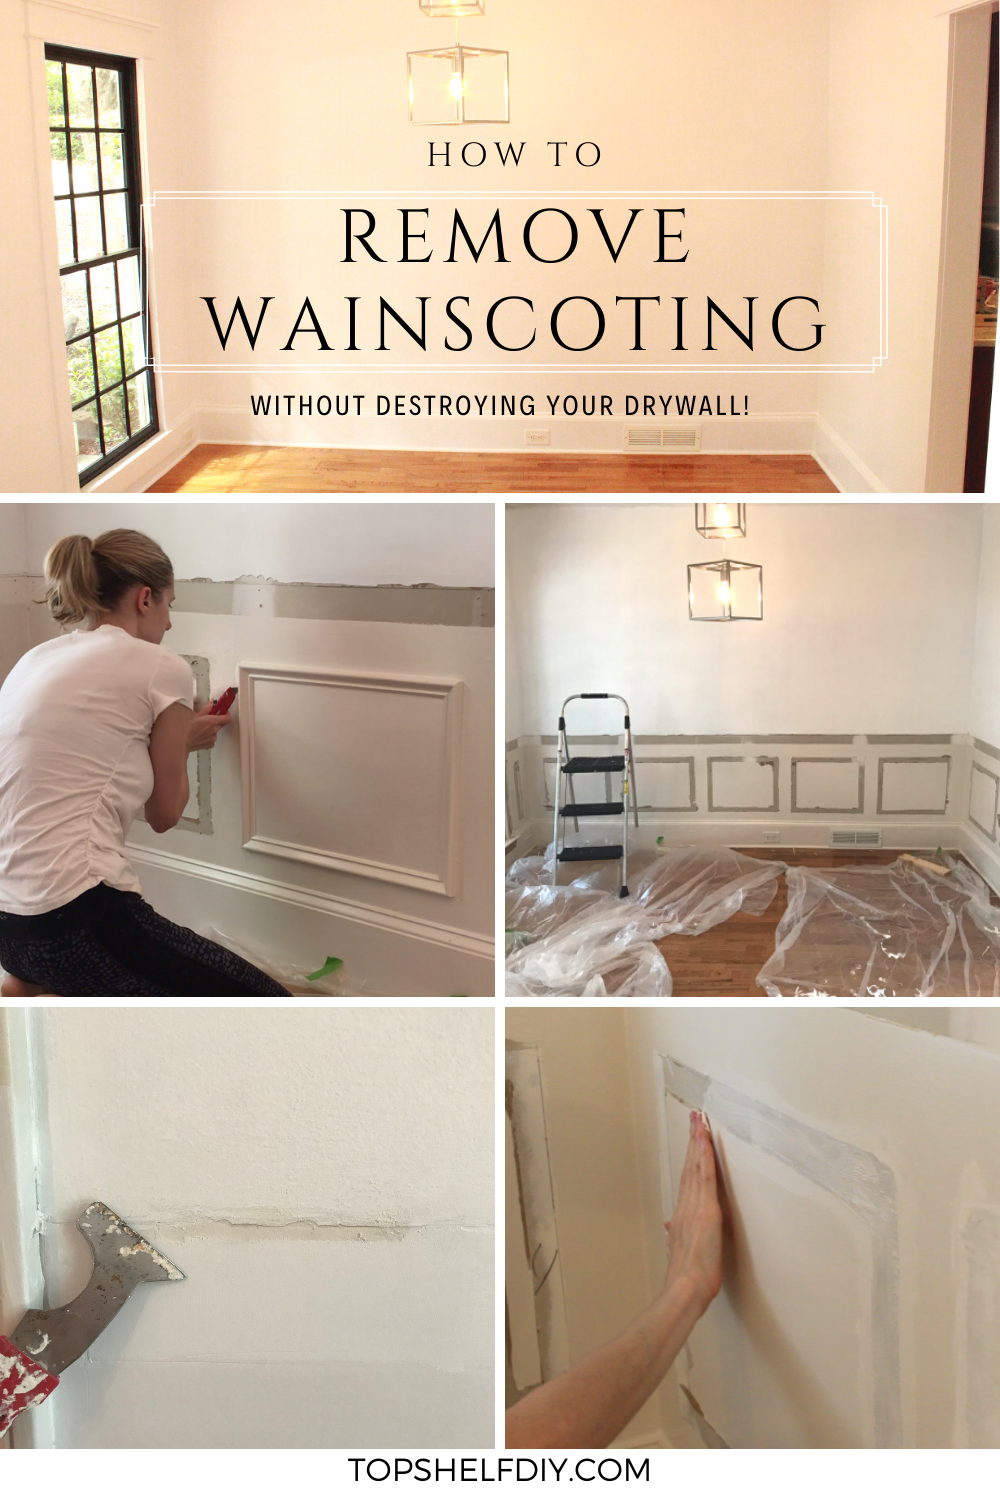 Not all wainscoting is created equal. If you're ready to ditch the paneled look, don't let the fear of damaging your walls hold you back! #wainscoting #wainscotingremoval #diywainscoting